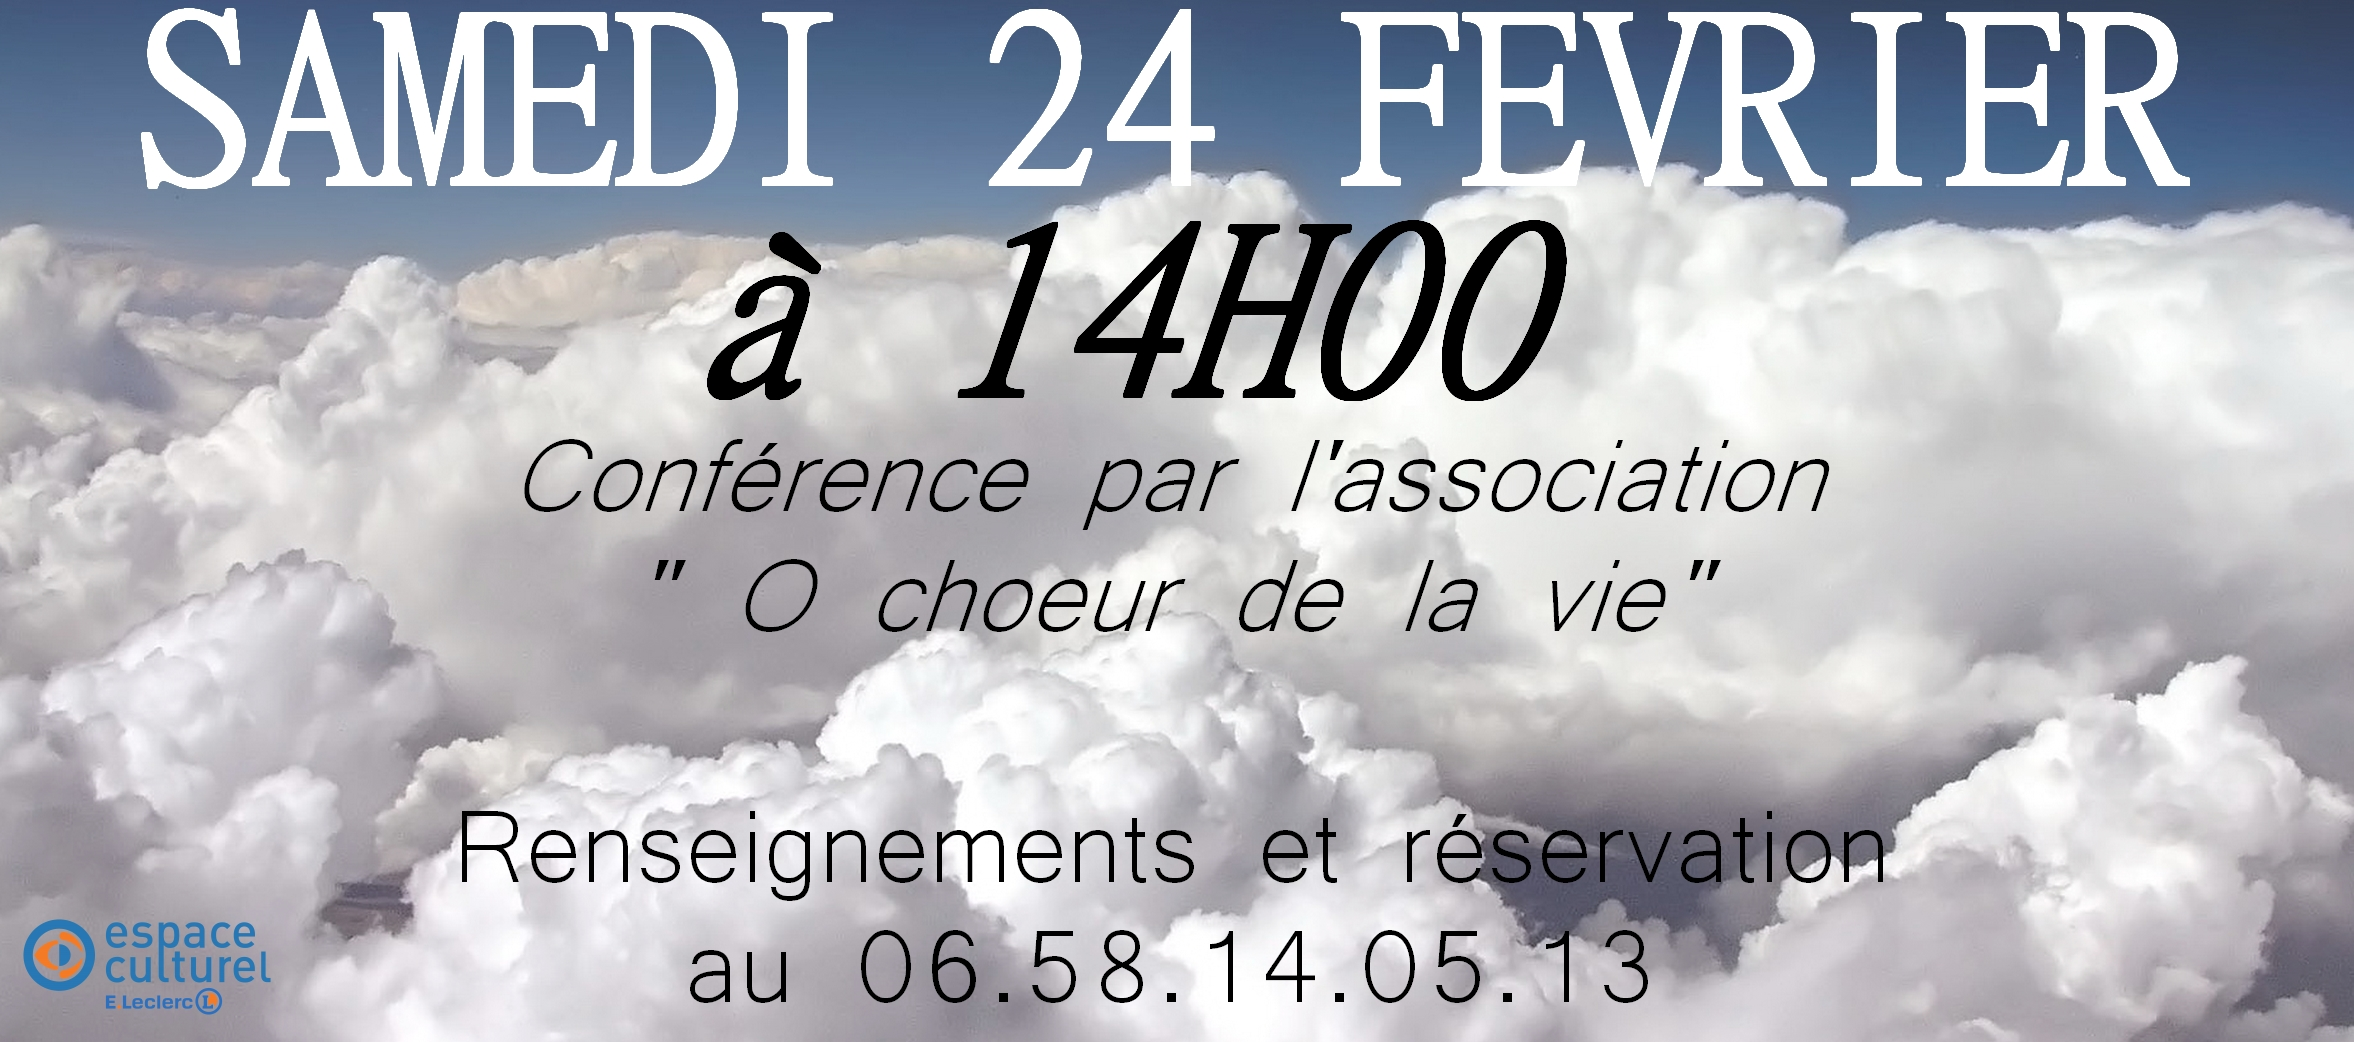 Conf%c3%a9rence